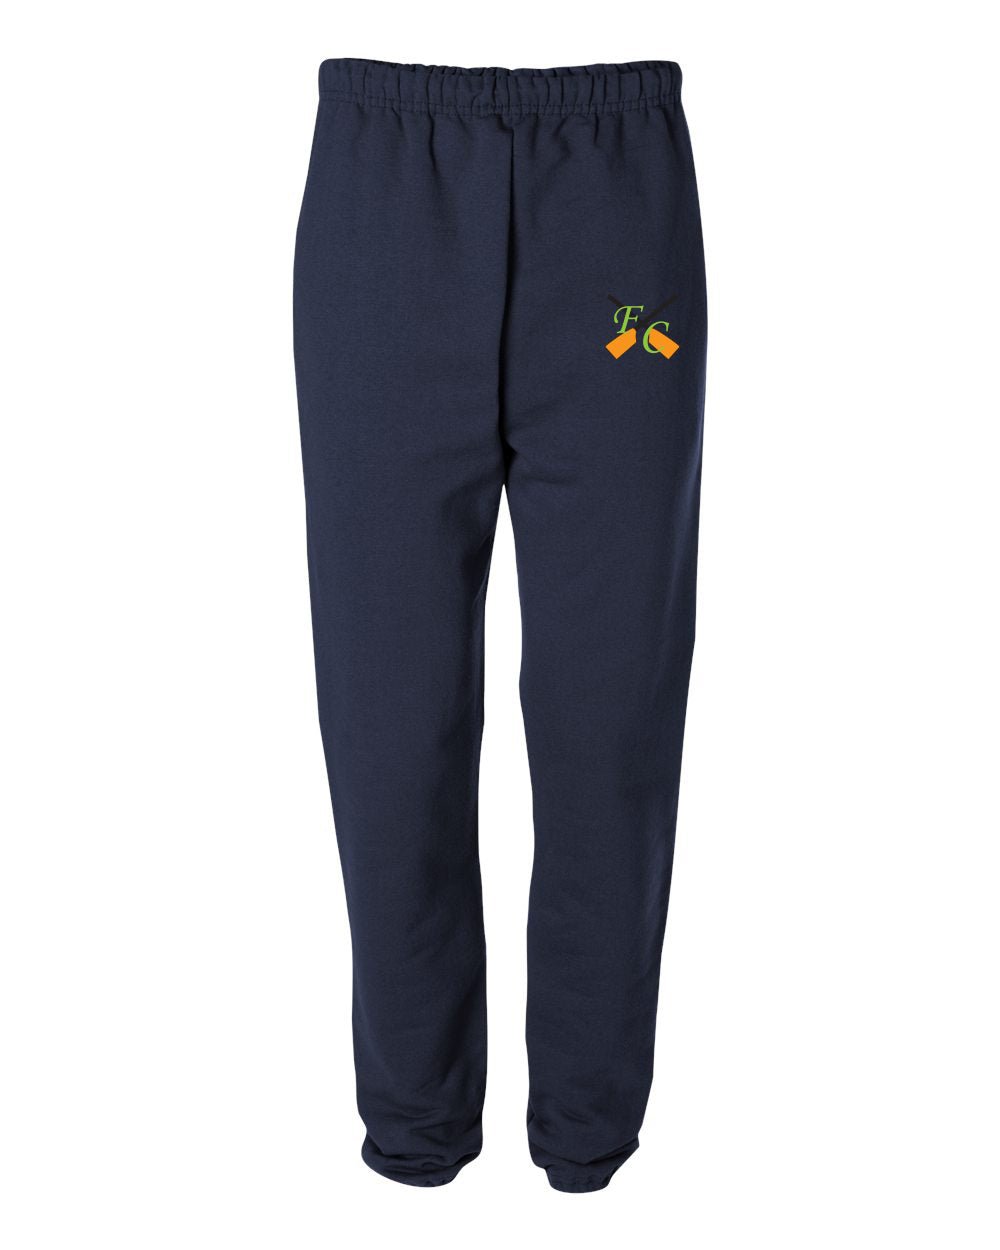 Team FCRA Sweatpants